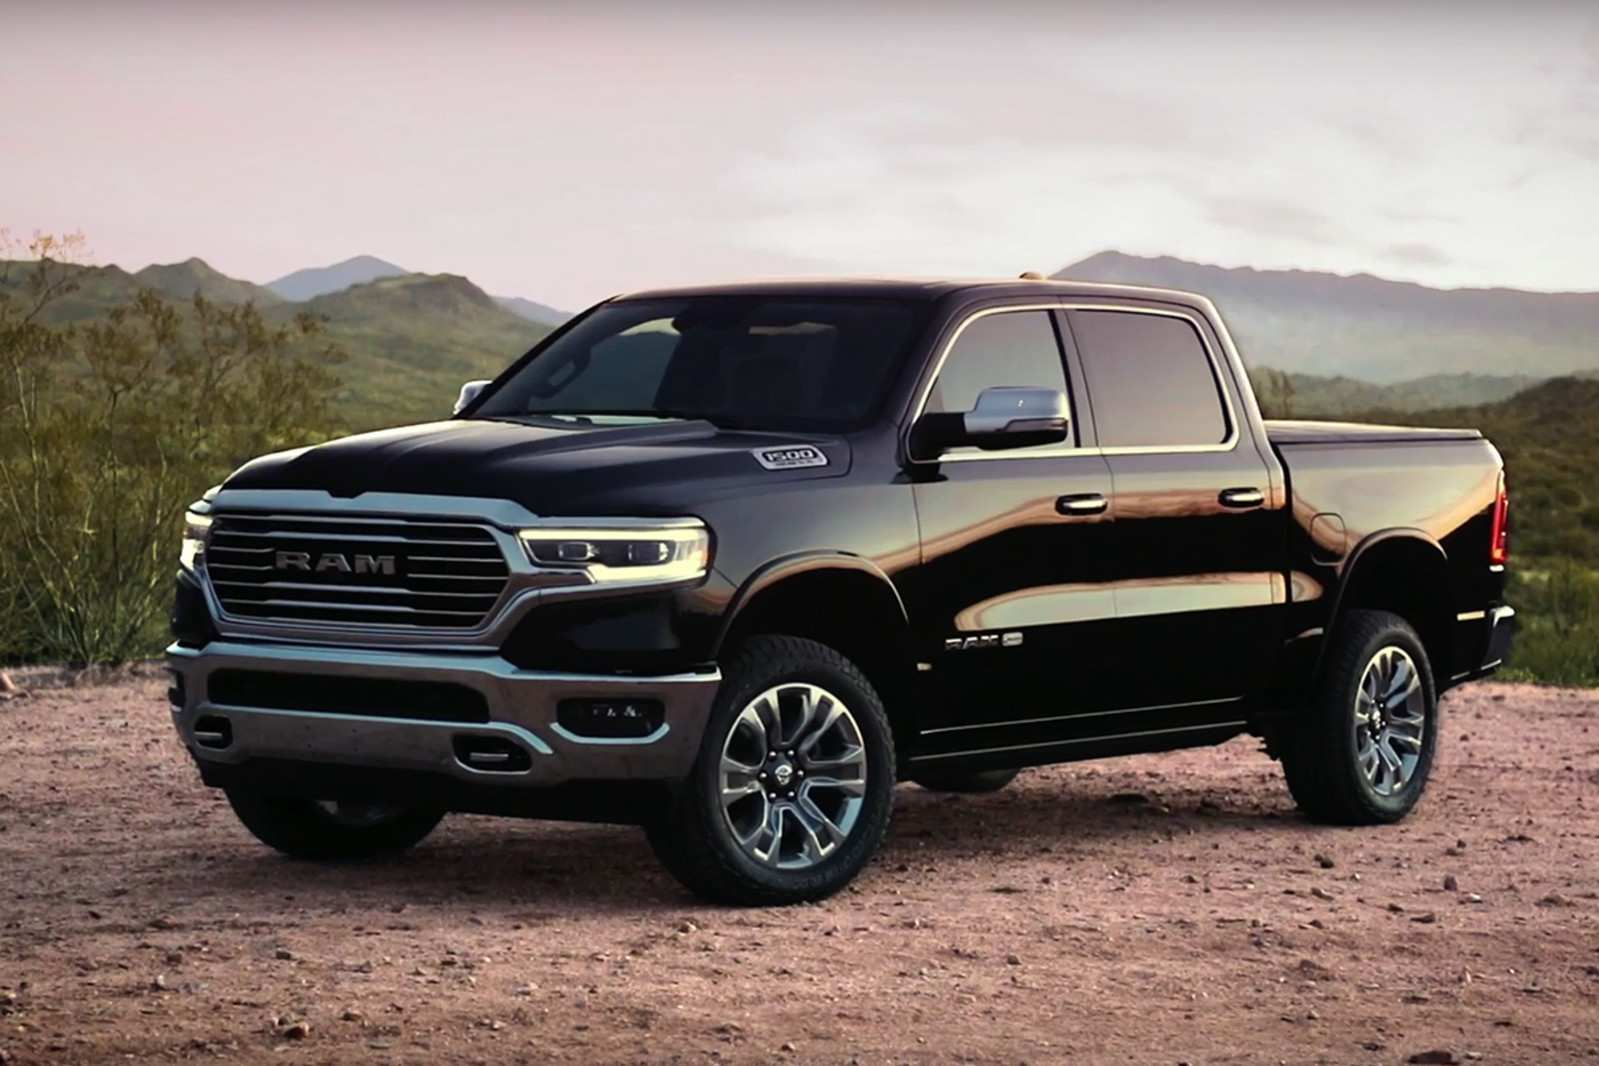 16 The Best 2019 Dodge Ram 1500 Images Pictures